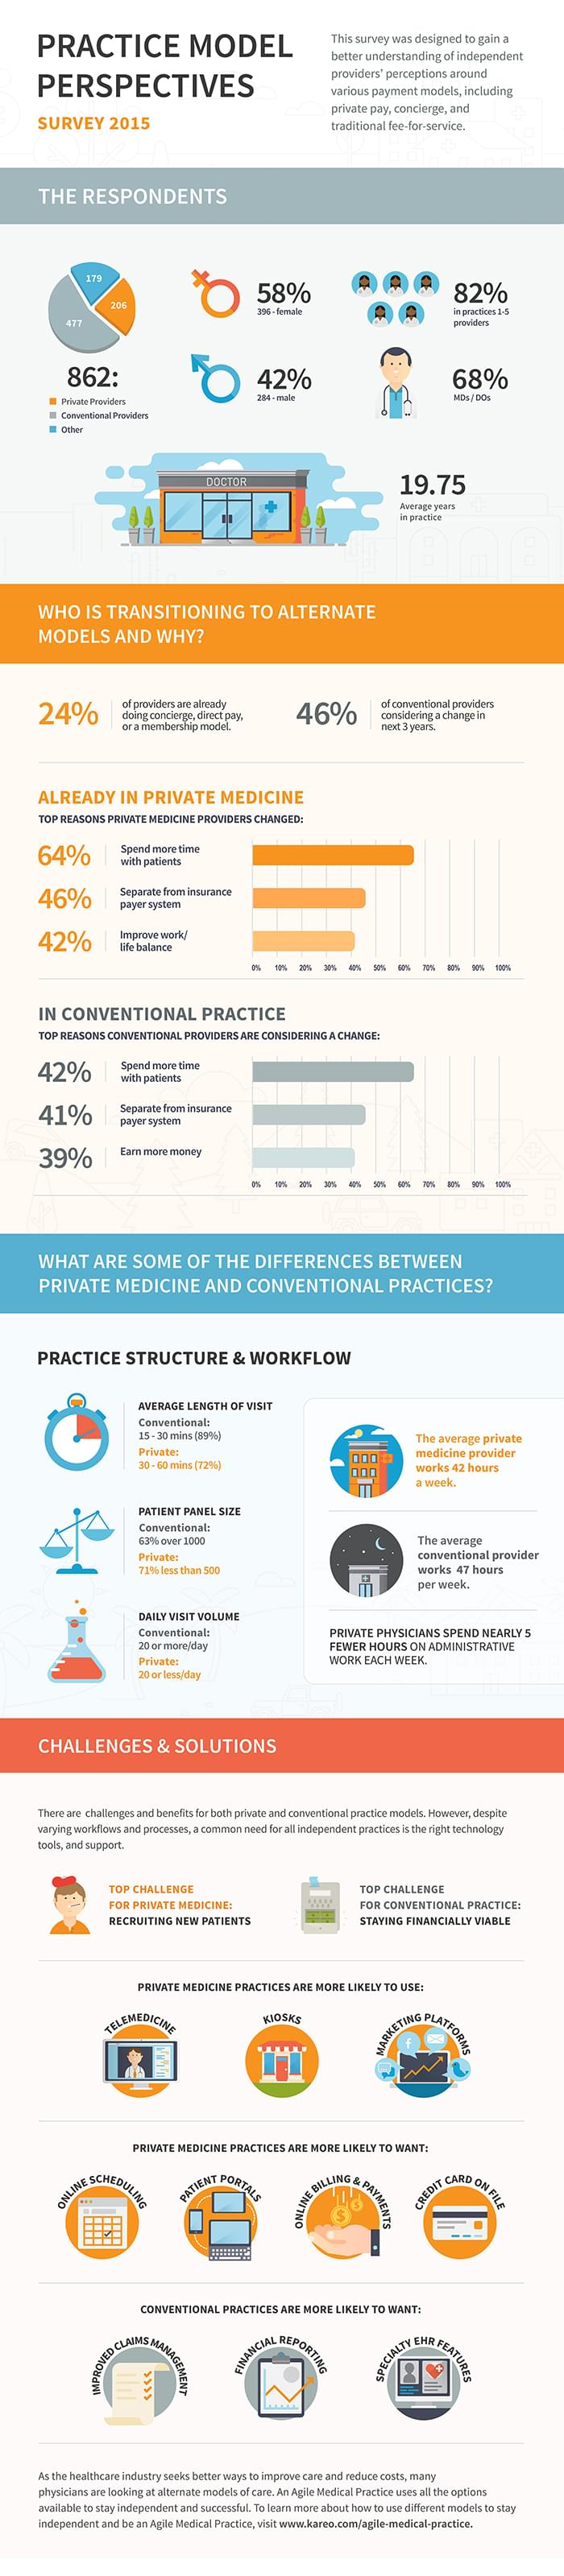 alternative medical practice models